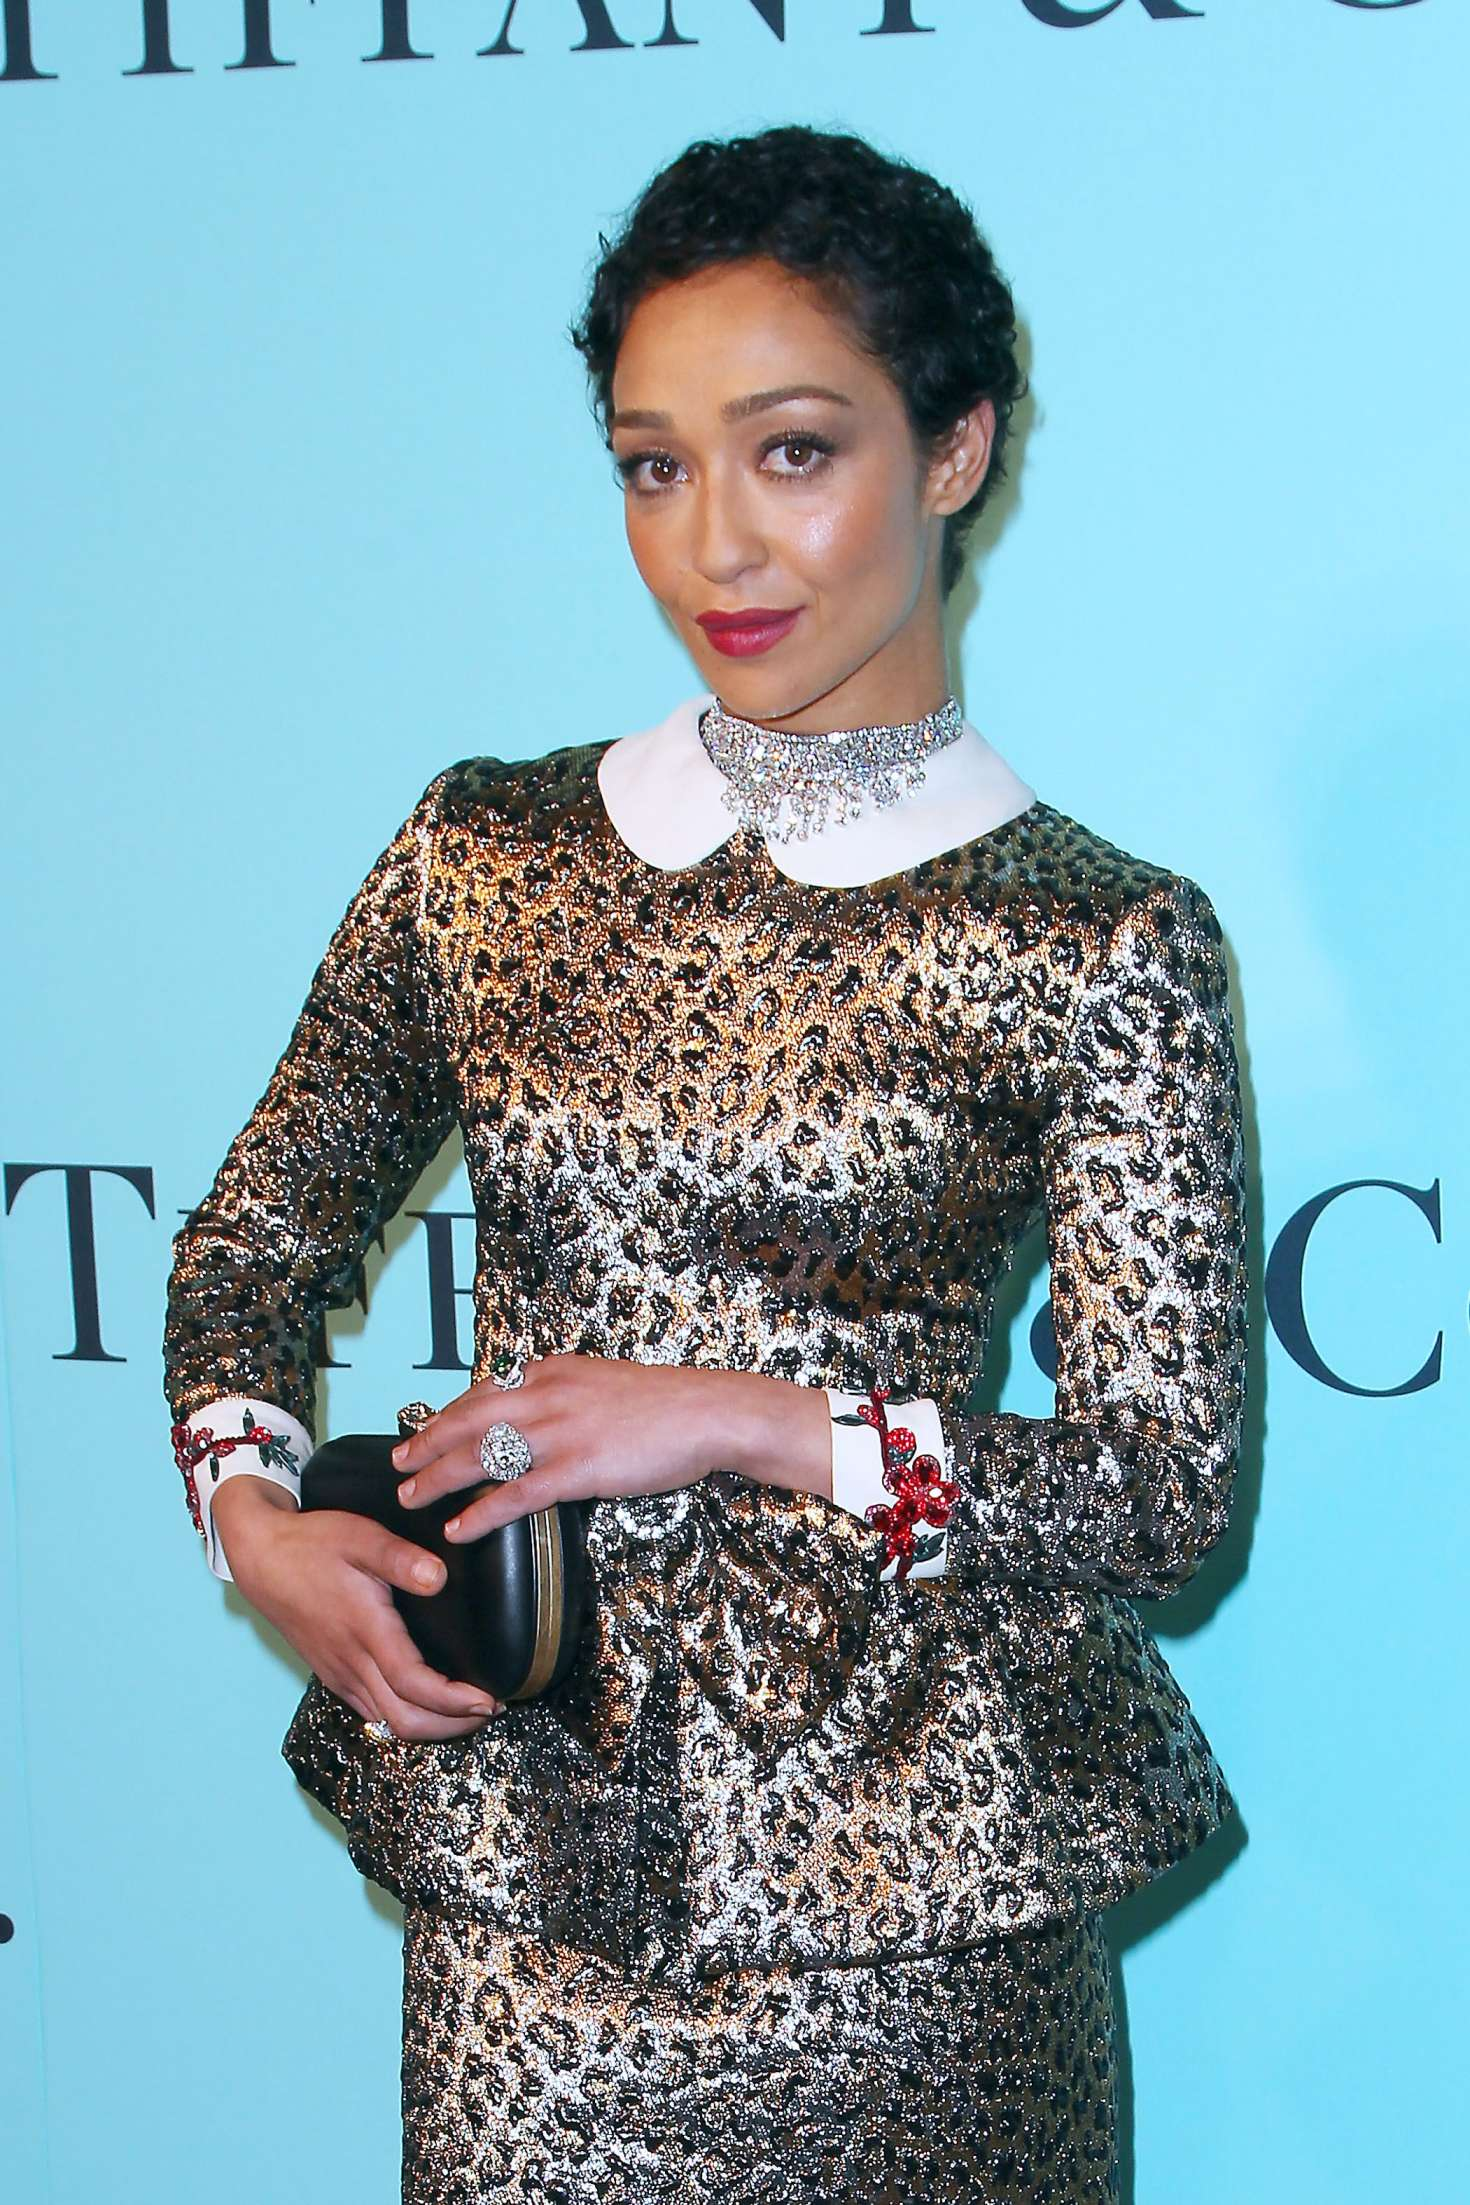 Ruth Negga On Tumblr: Tiffany And Co 2017 Blue Book Collection Gala